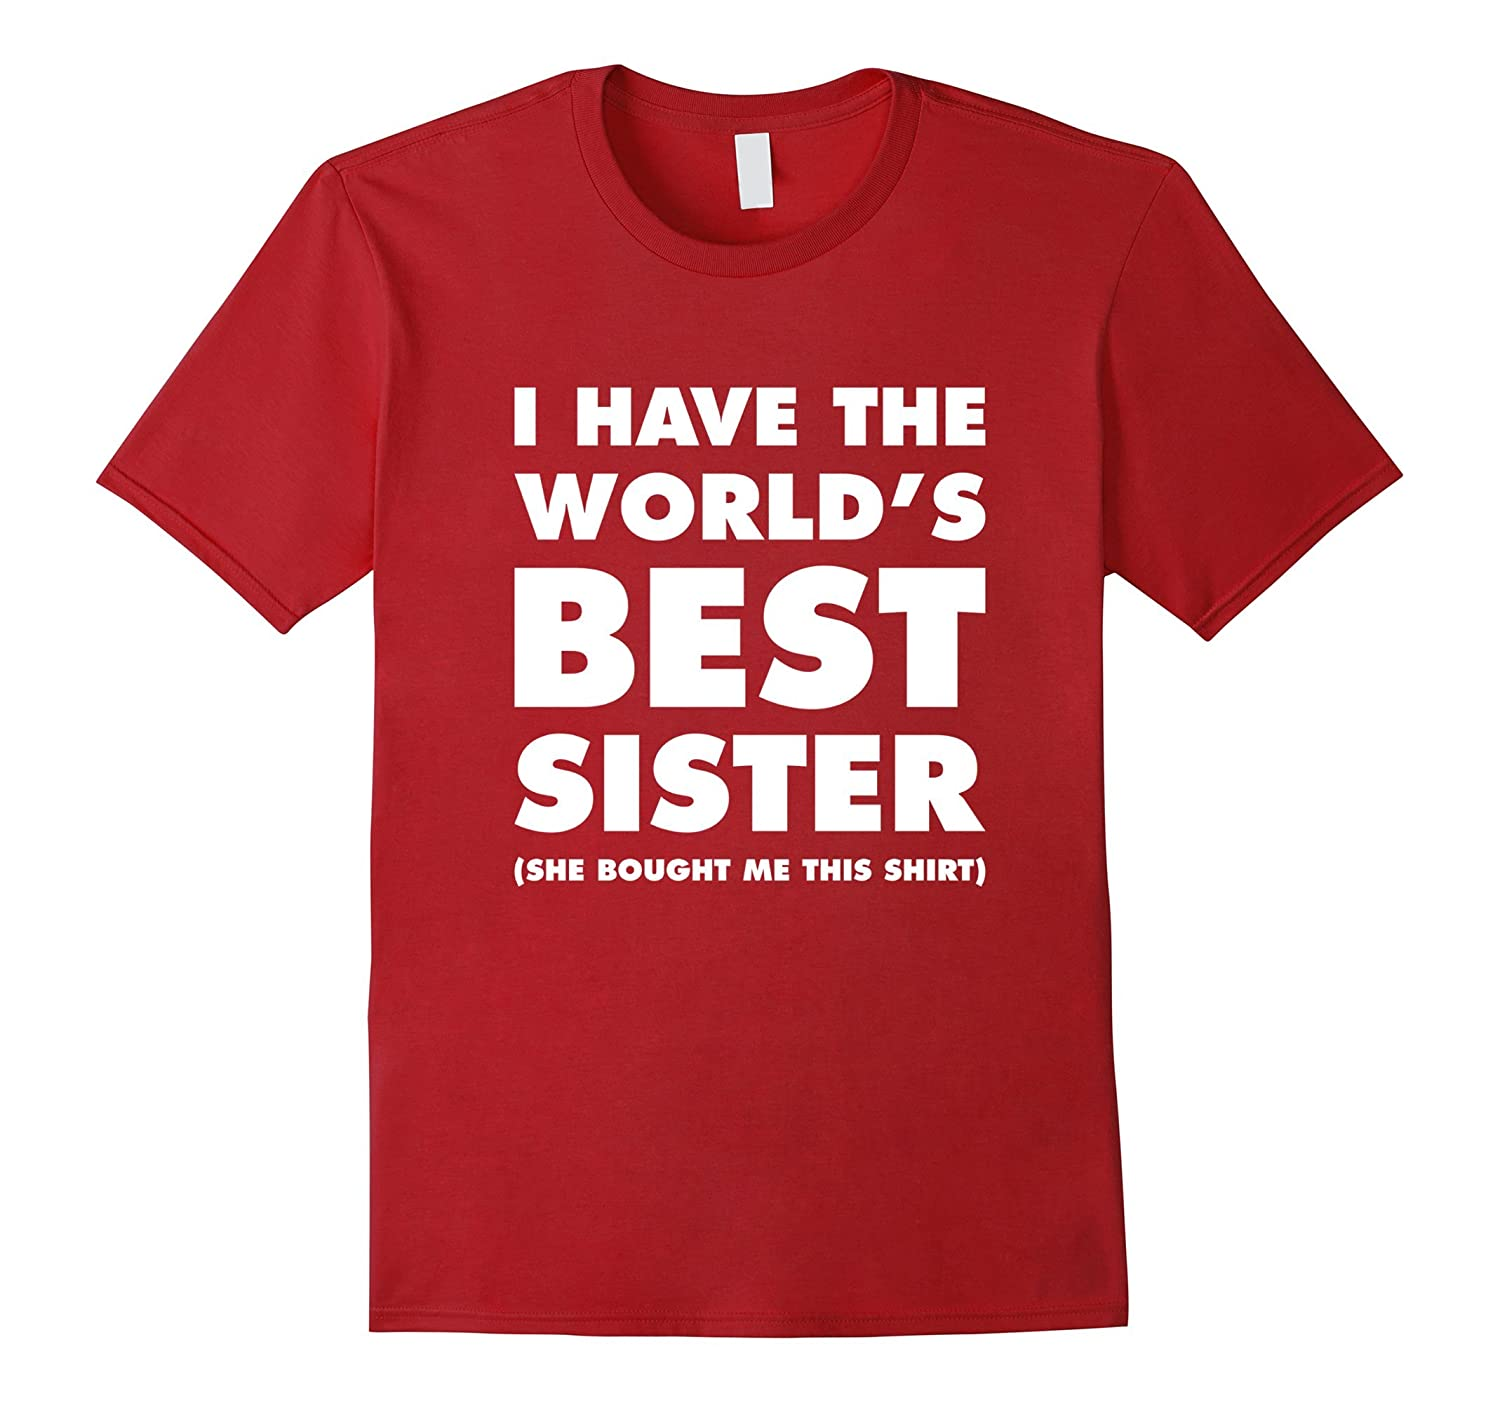 I Have The Best Sister In The World Quotes: I Have The World's Best Sister Funny T-shirt For Siblings